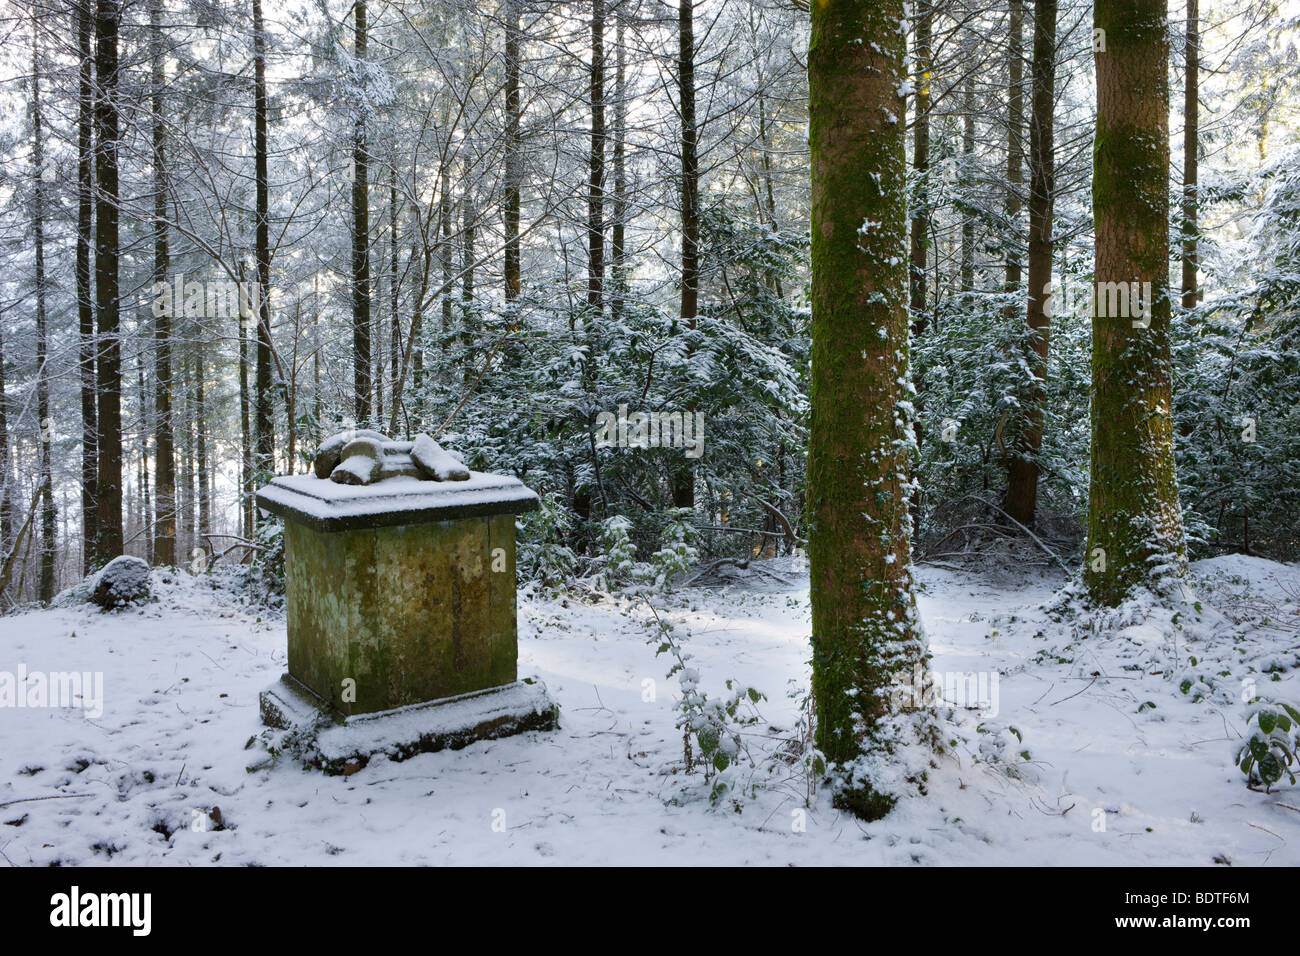 Memorial in Morchard Bishop Wood after a heavy snowfall, Devon, England. Winter (February) 2009 - Stock Image